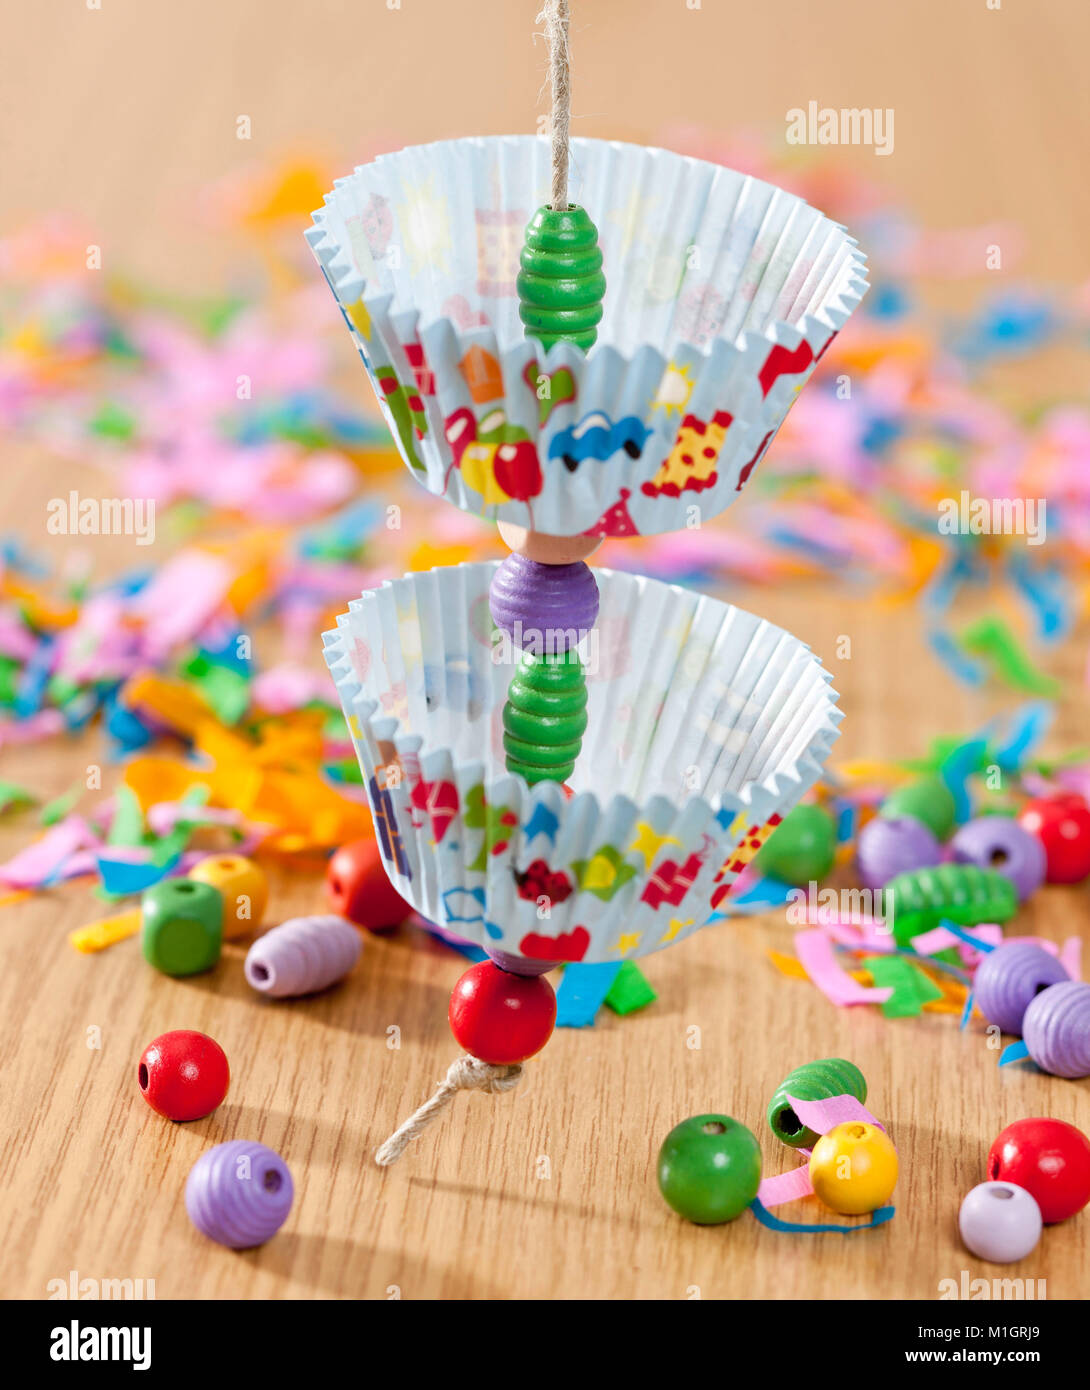 Budgerigar, Budgie (Melopsittacus undulatus). Assembly instruction for budgeriar toy, made from paper muffin liners - Stock Image